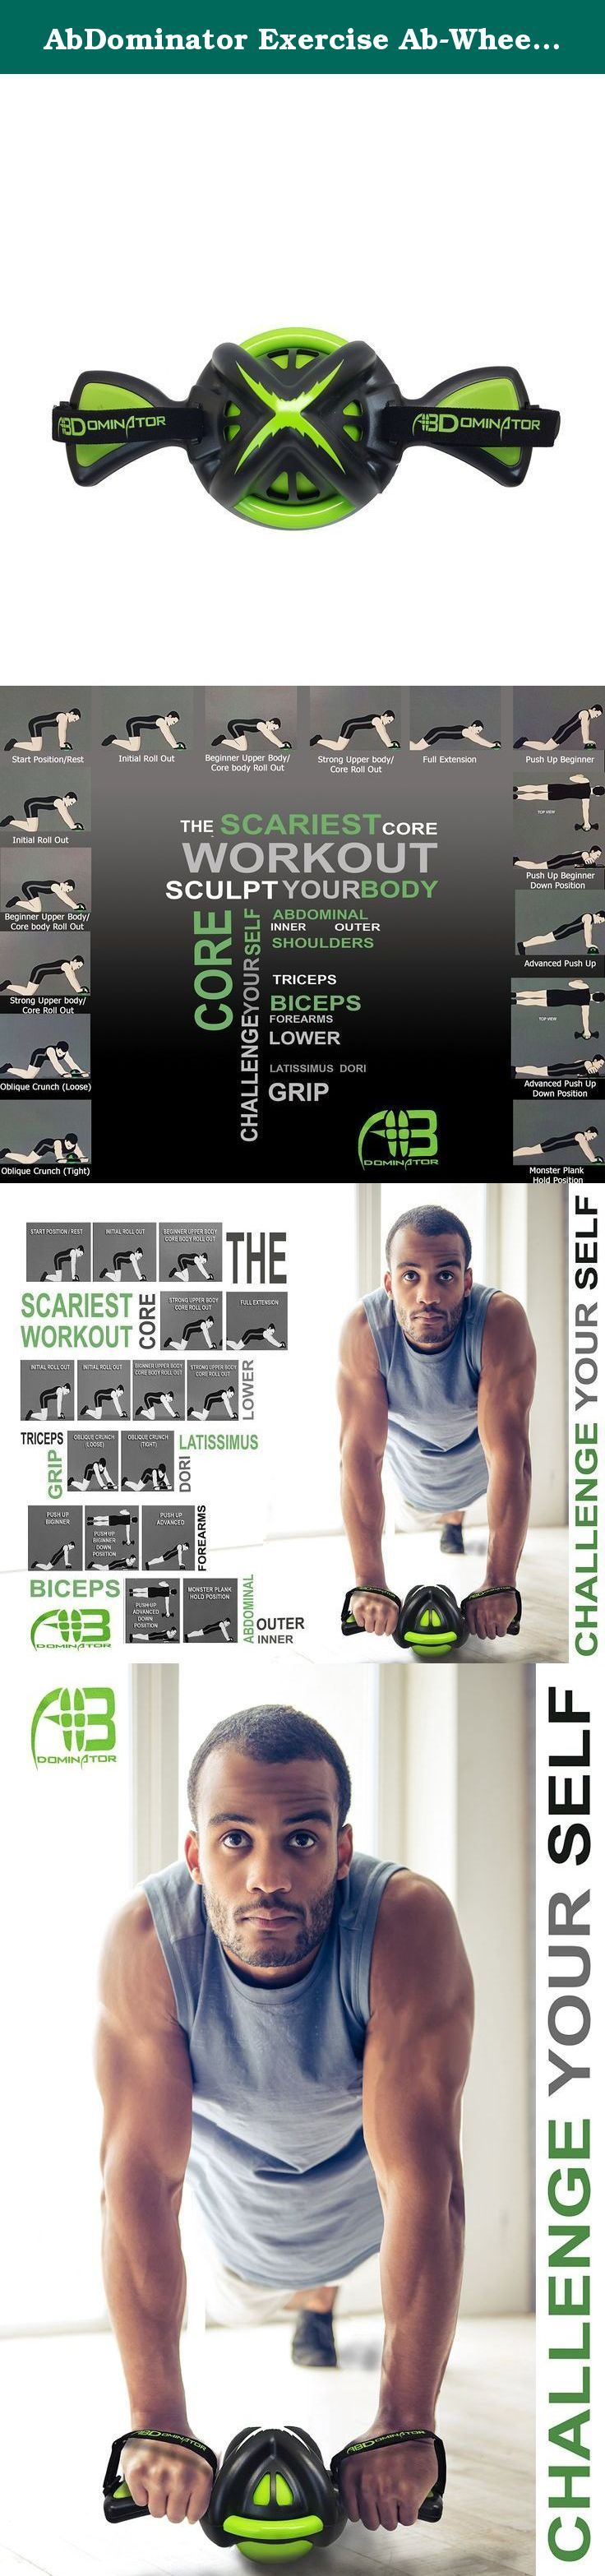 AbDominator Exercise Ab-Wheel / Ab-Roller - Perfect Core Workout For Men & Women At Any Fitness Level. Perfect your body with the AbDominator. (See images above). This highly effective fitness tool uses a patented multi-directional roller ball that allows smooth rolling in absolutely any direction. Try an arch, s-curve, figure 8 or one of your own patterns to control the intensity & achieve a satisfying full-body workout. The toning wheel features gel grips & handle straps and is built...